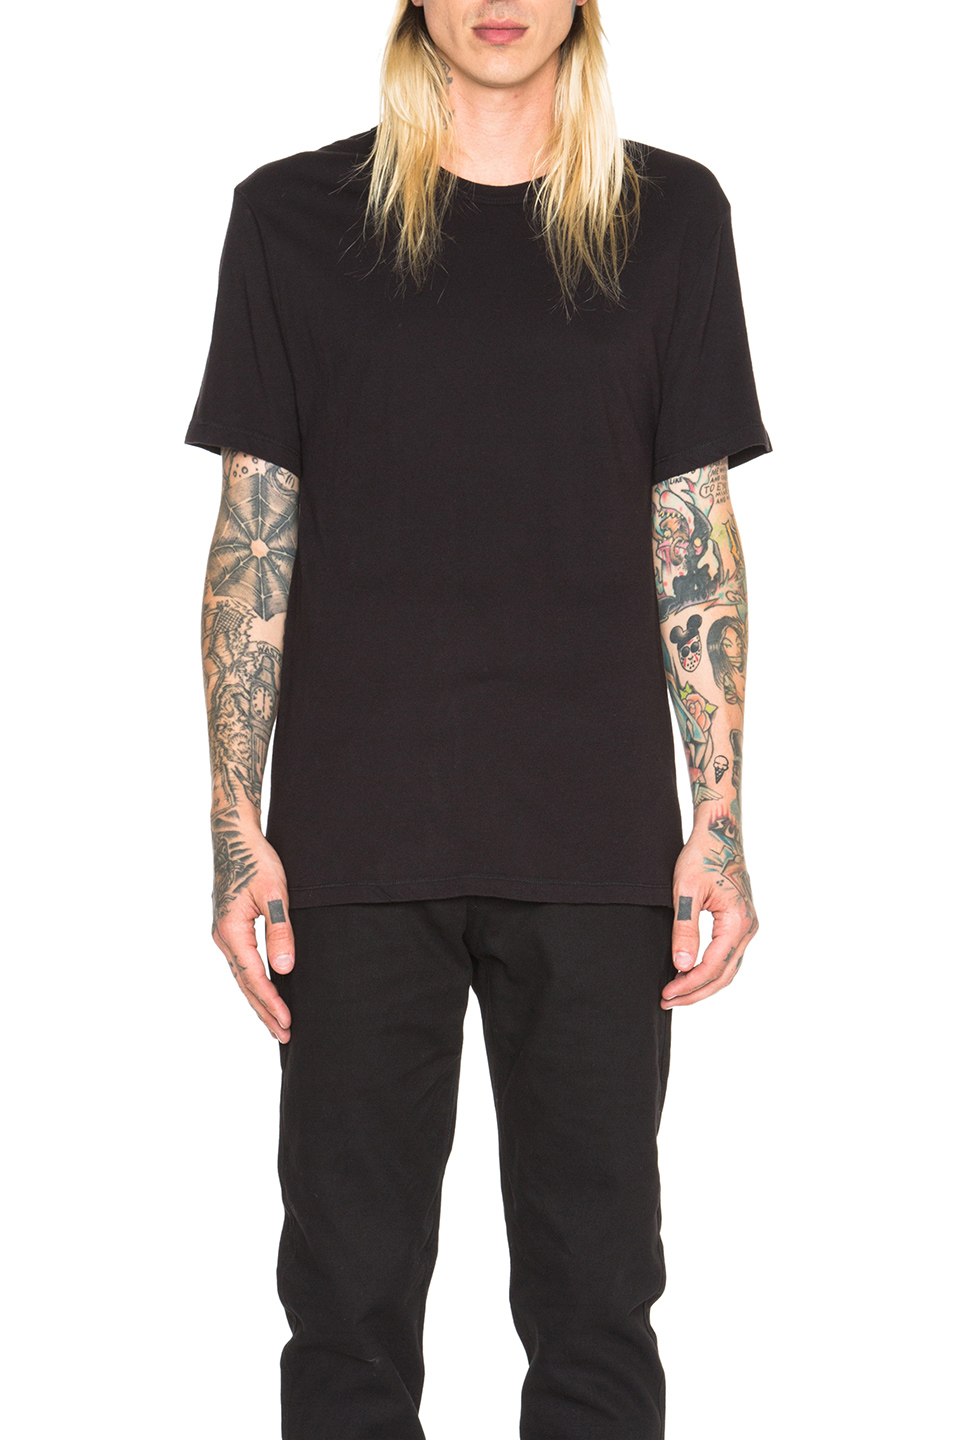 Alexander Wang Classic Short Sleeve Tee in Black